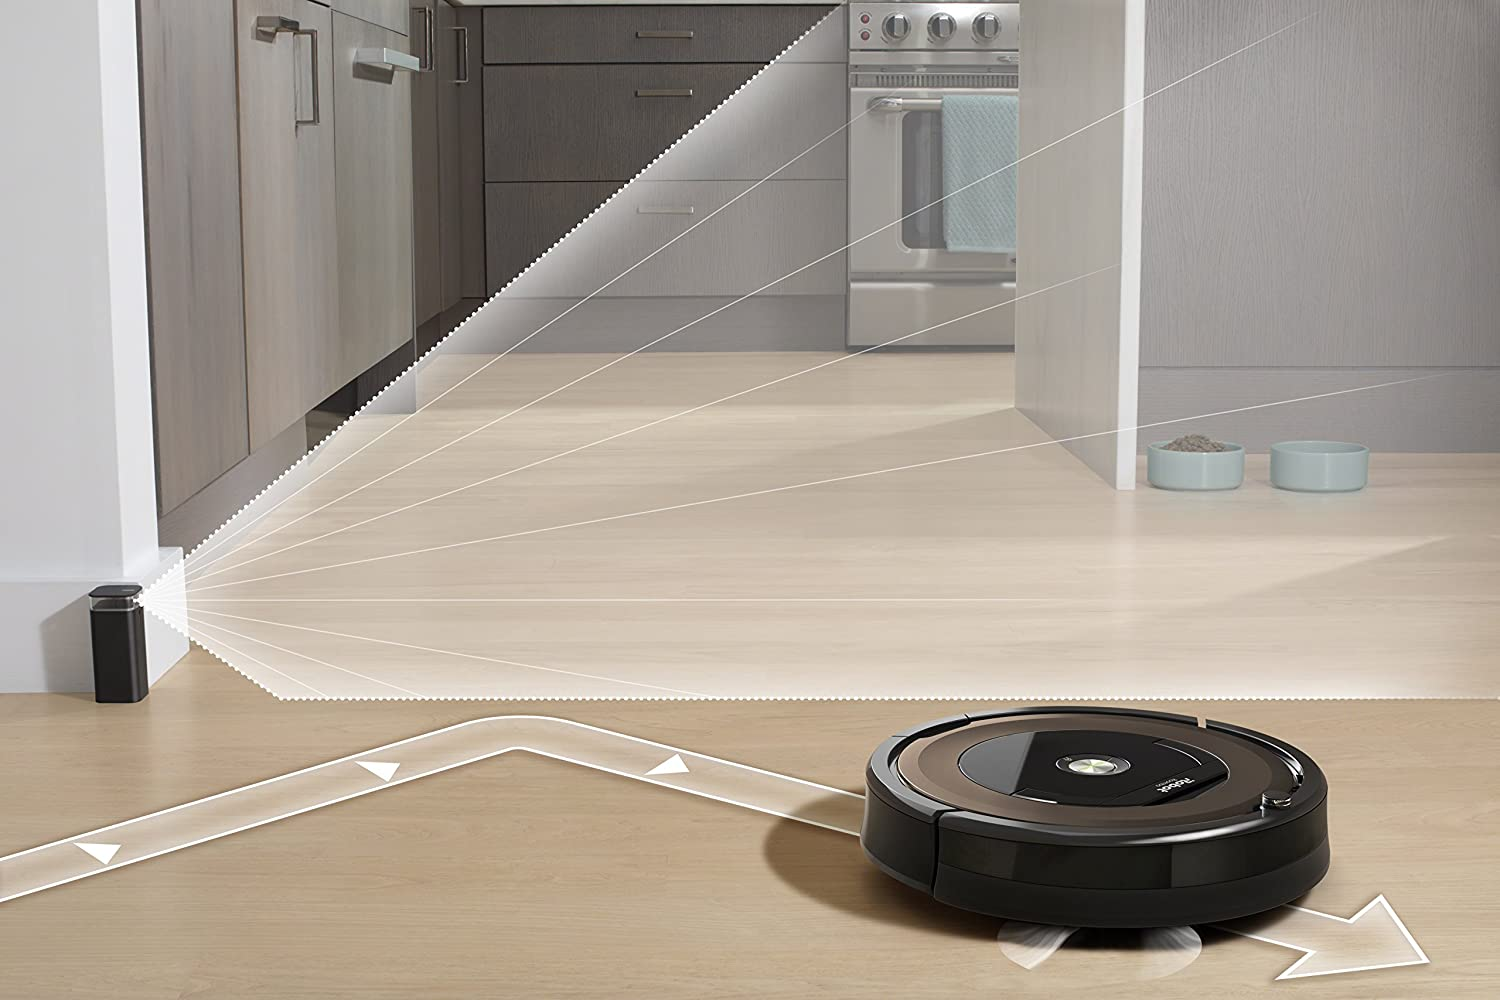 roomba 890 review pet hair